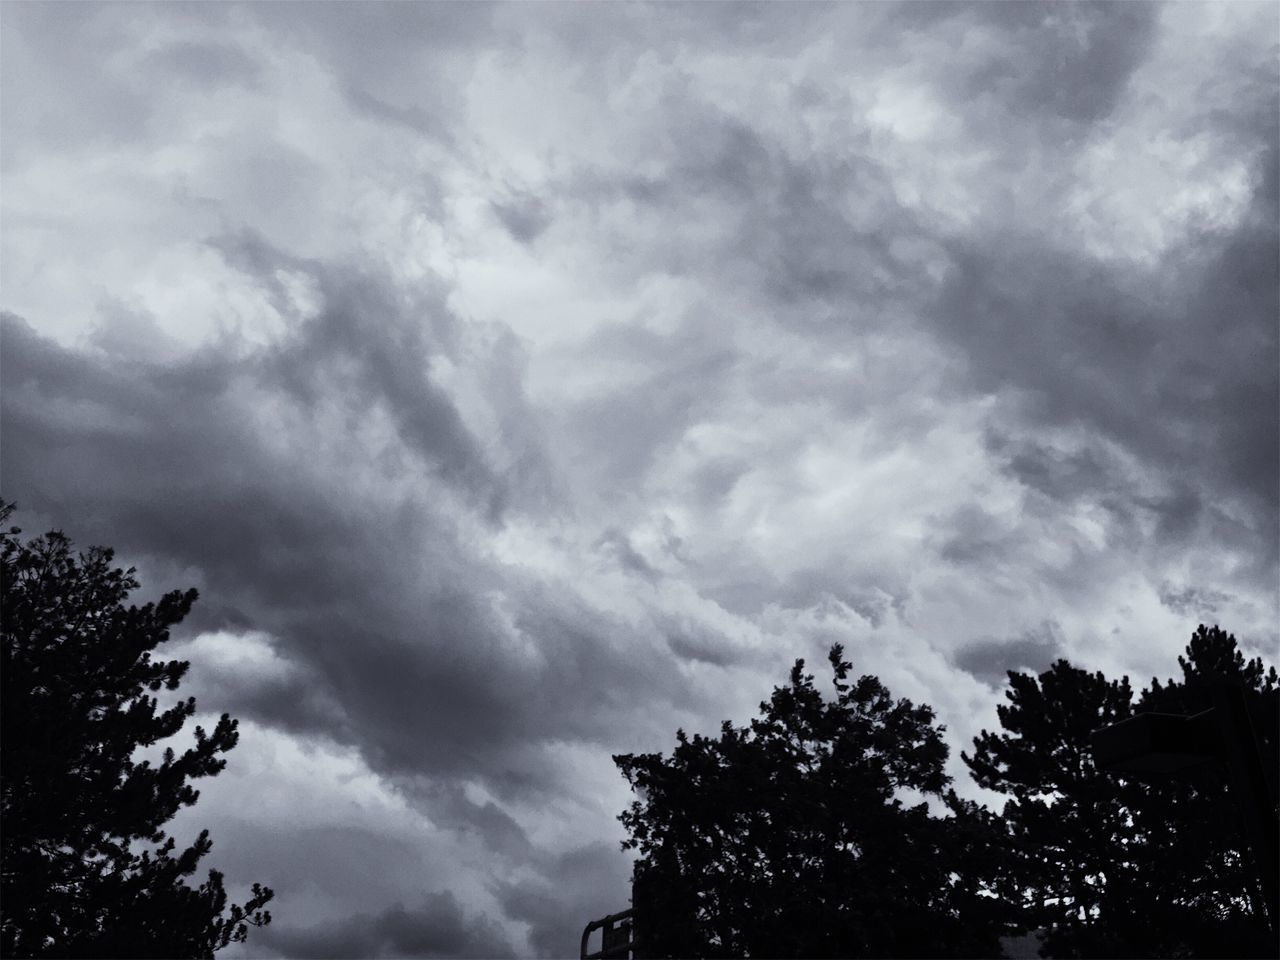 Storm 01 | Thunderstorm Clouds Storm Cloud Storm Rain Rainy Days Gloomy Gloomy Weather Severe Weather Nature Photography Nature